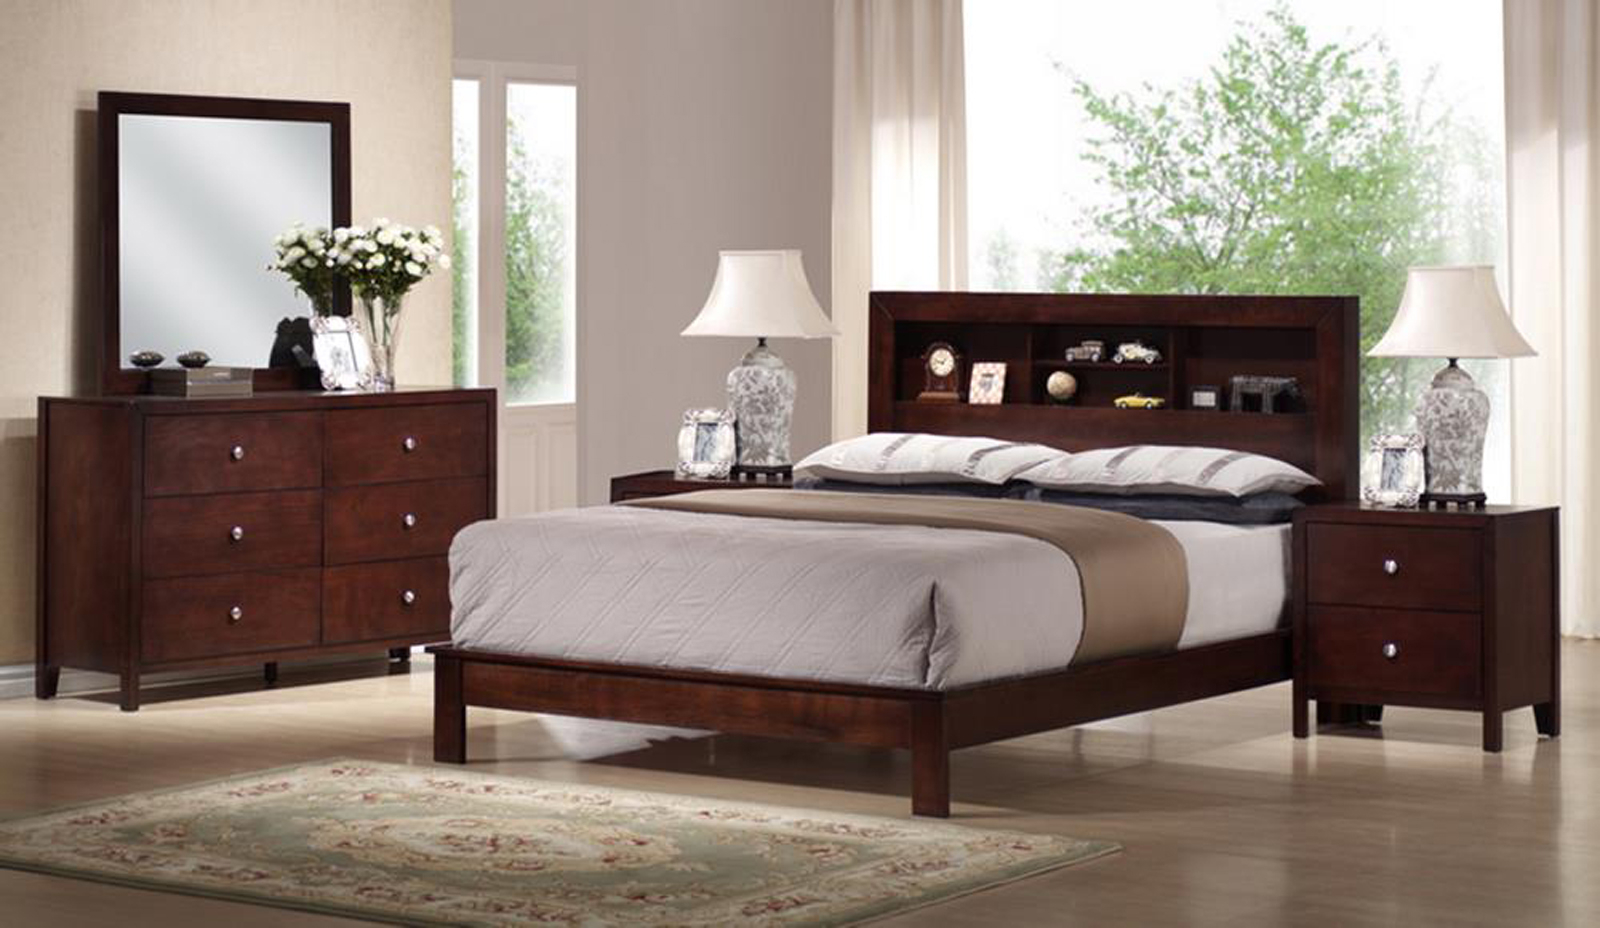 Baxton Studio Montana Mahogany Brown Wood 5 Piece Queen in Modern Bedroom Sets Queen